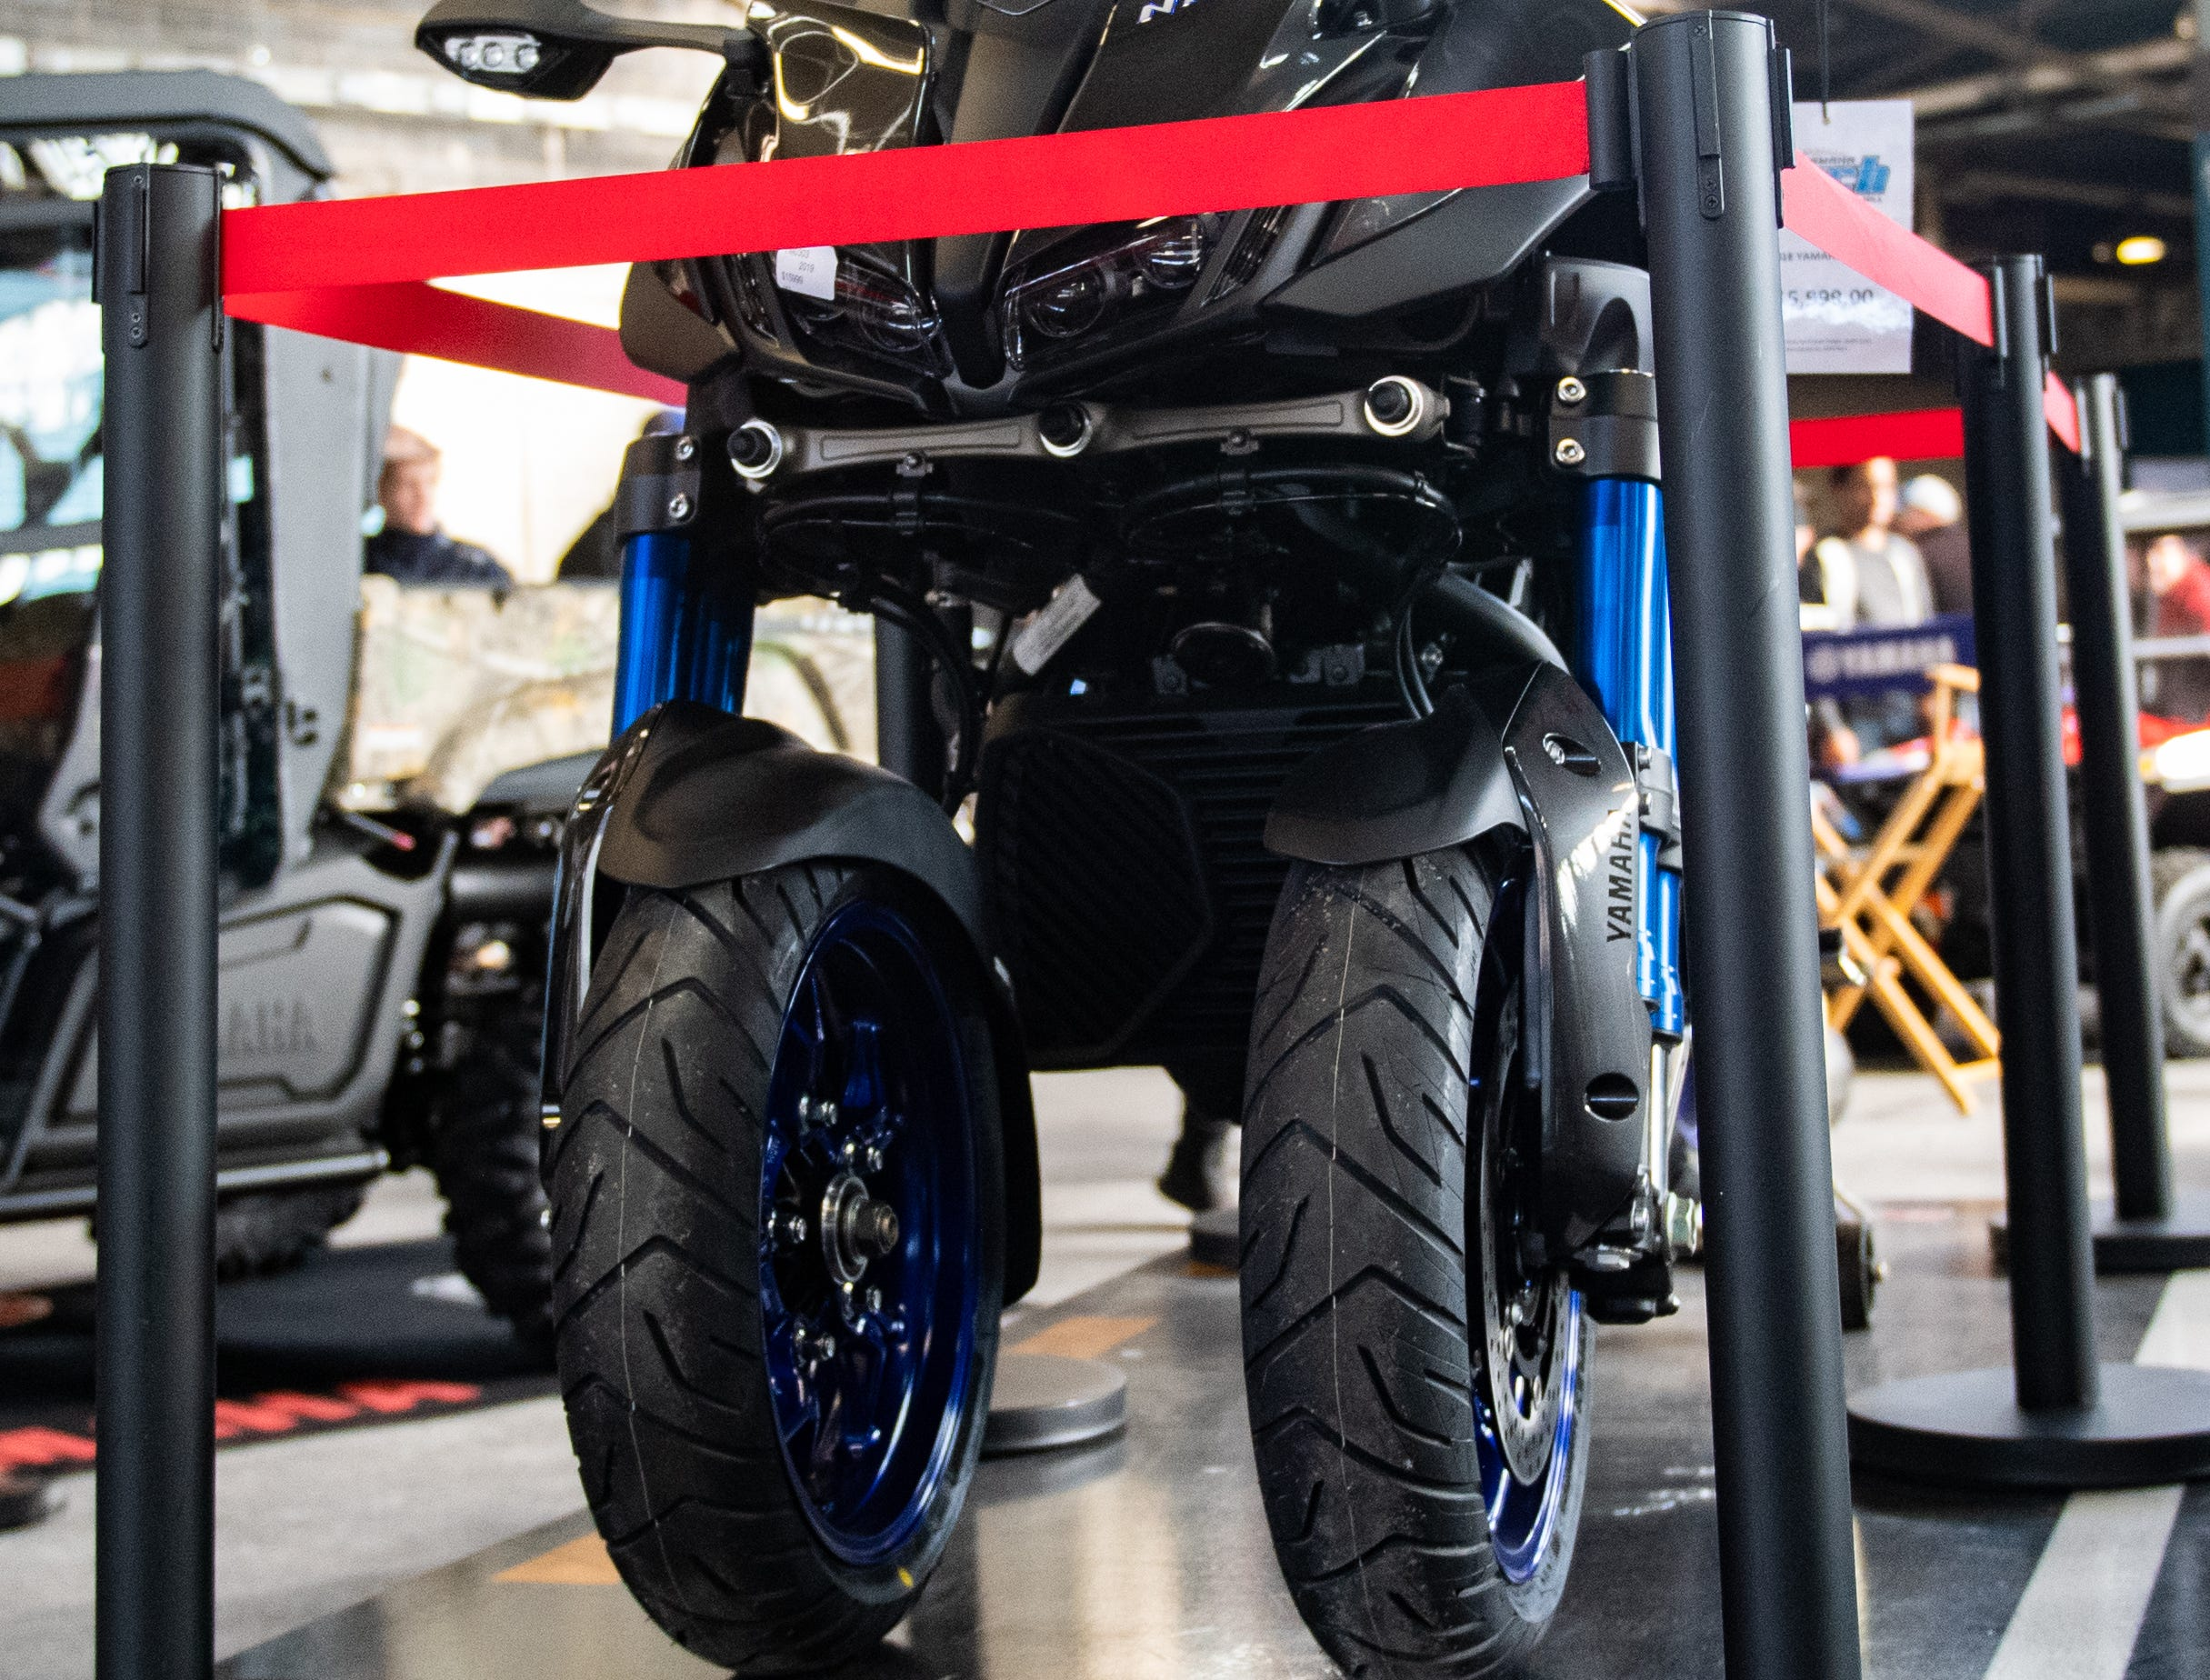 A Yamaha three wheeled motorcycle sits on display at the 2019 Pennsylvania Auto Show, Saturday, January 26, 2019 at the Pennsylvania Farm Show Complex & Expo Center. The auto show continues on Sunday from 10 a.m. to 5 p.m.